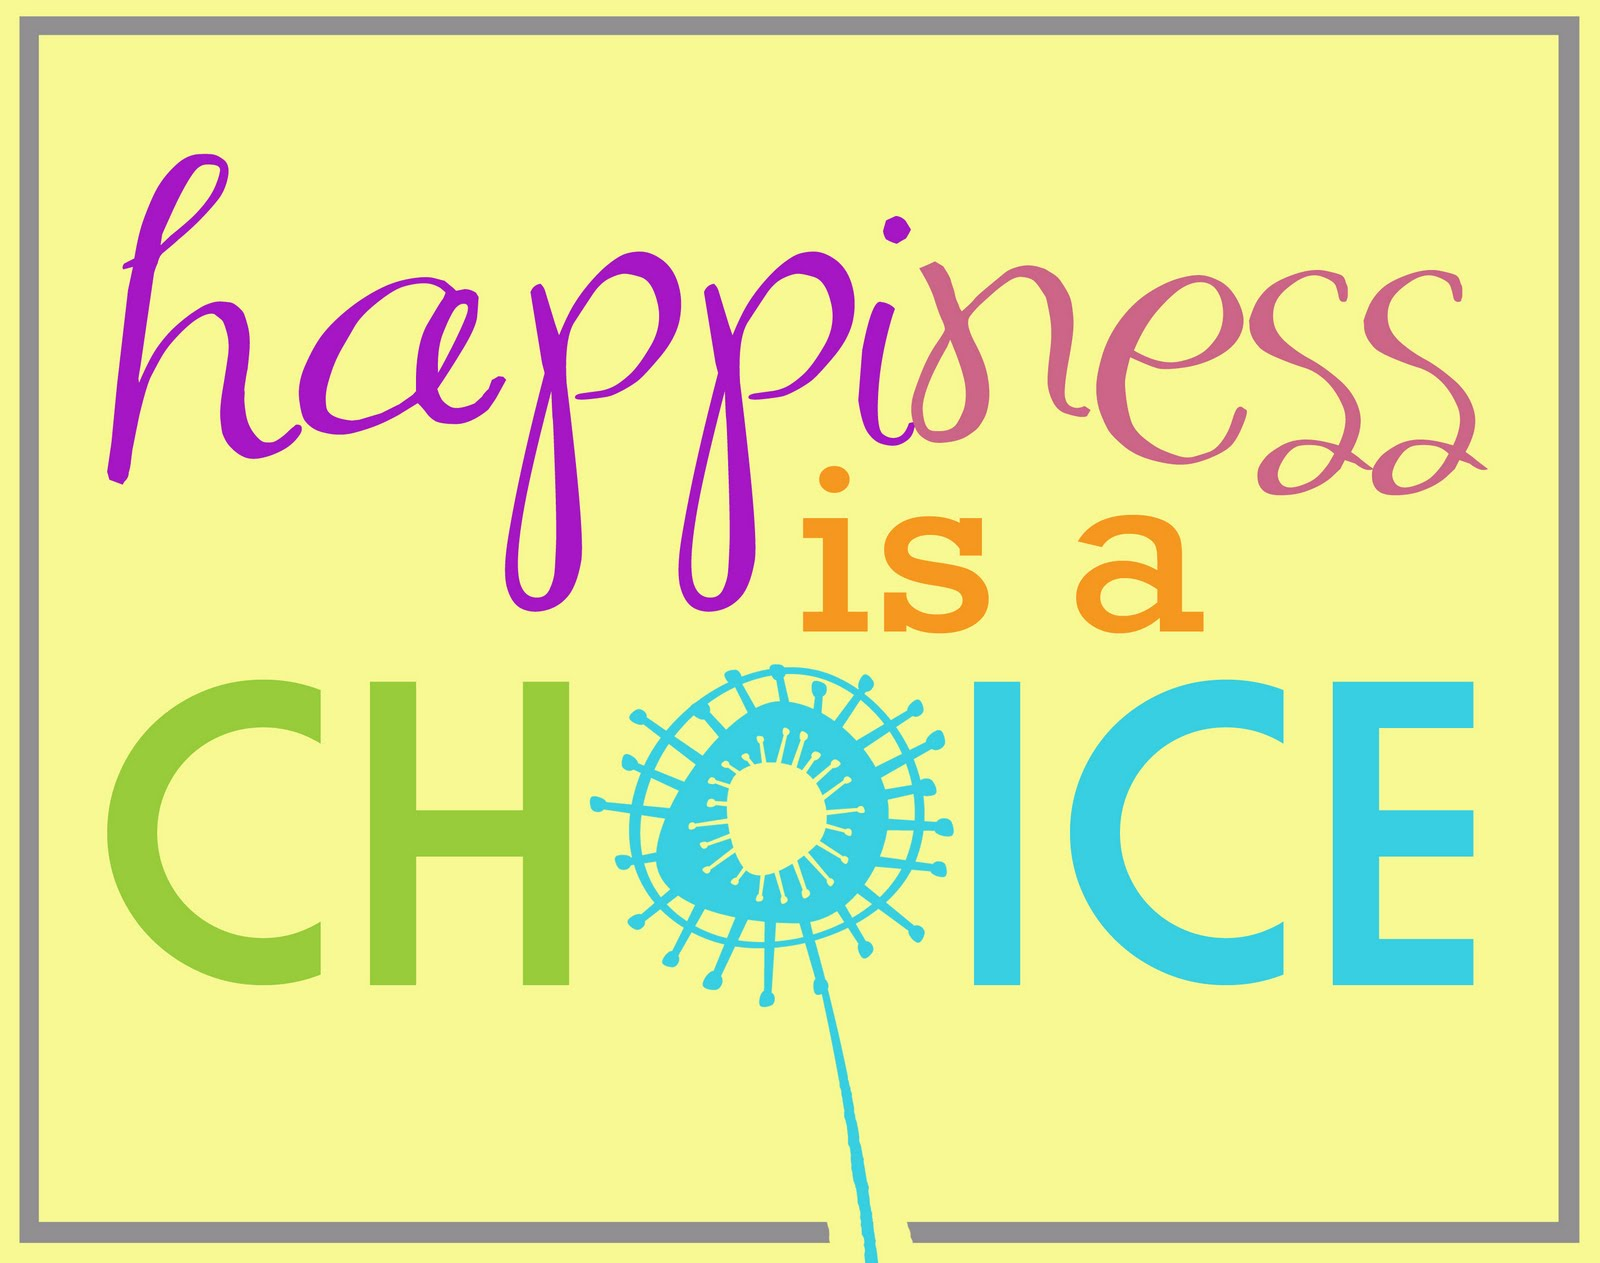 https://positiveattitudechangeseverything.files.wordpress.com/2012/04/happiness_is_a_choice.jpg